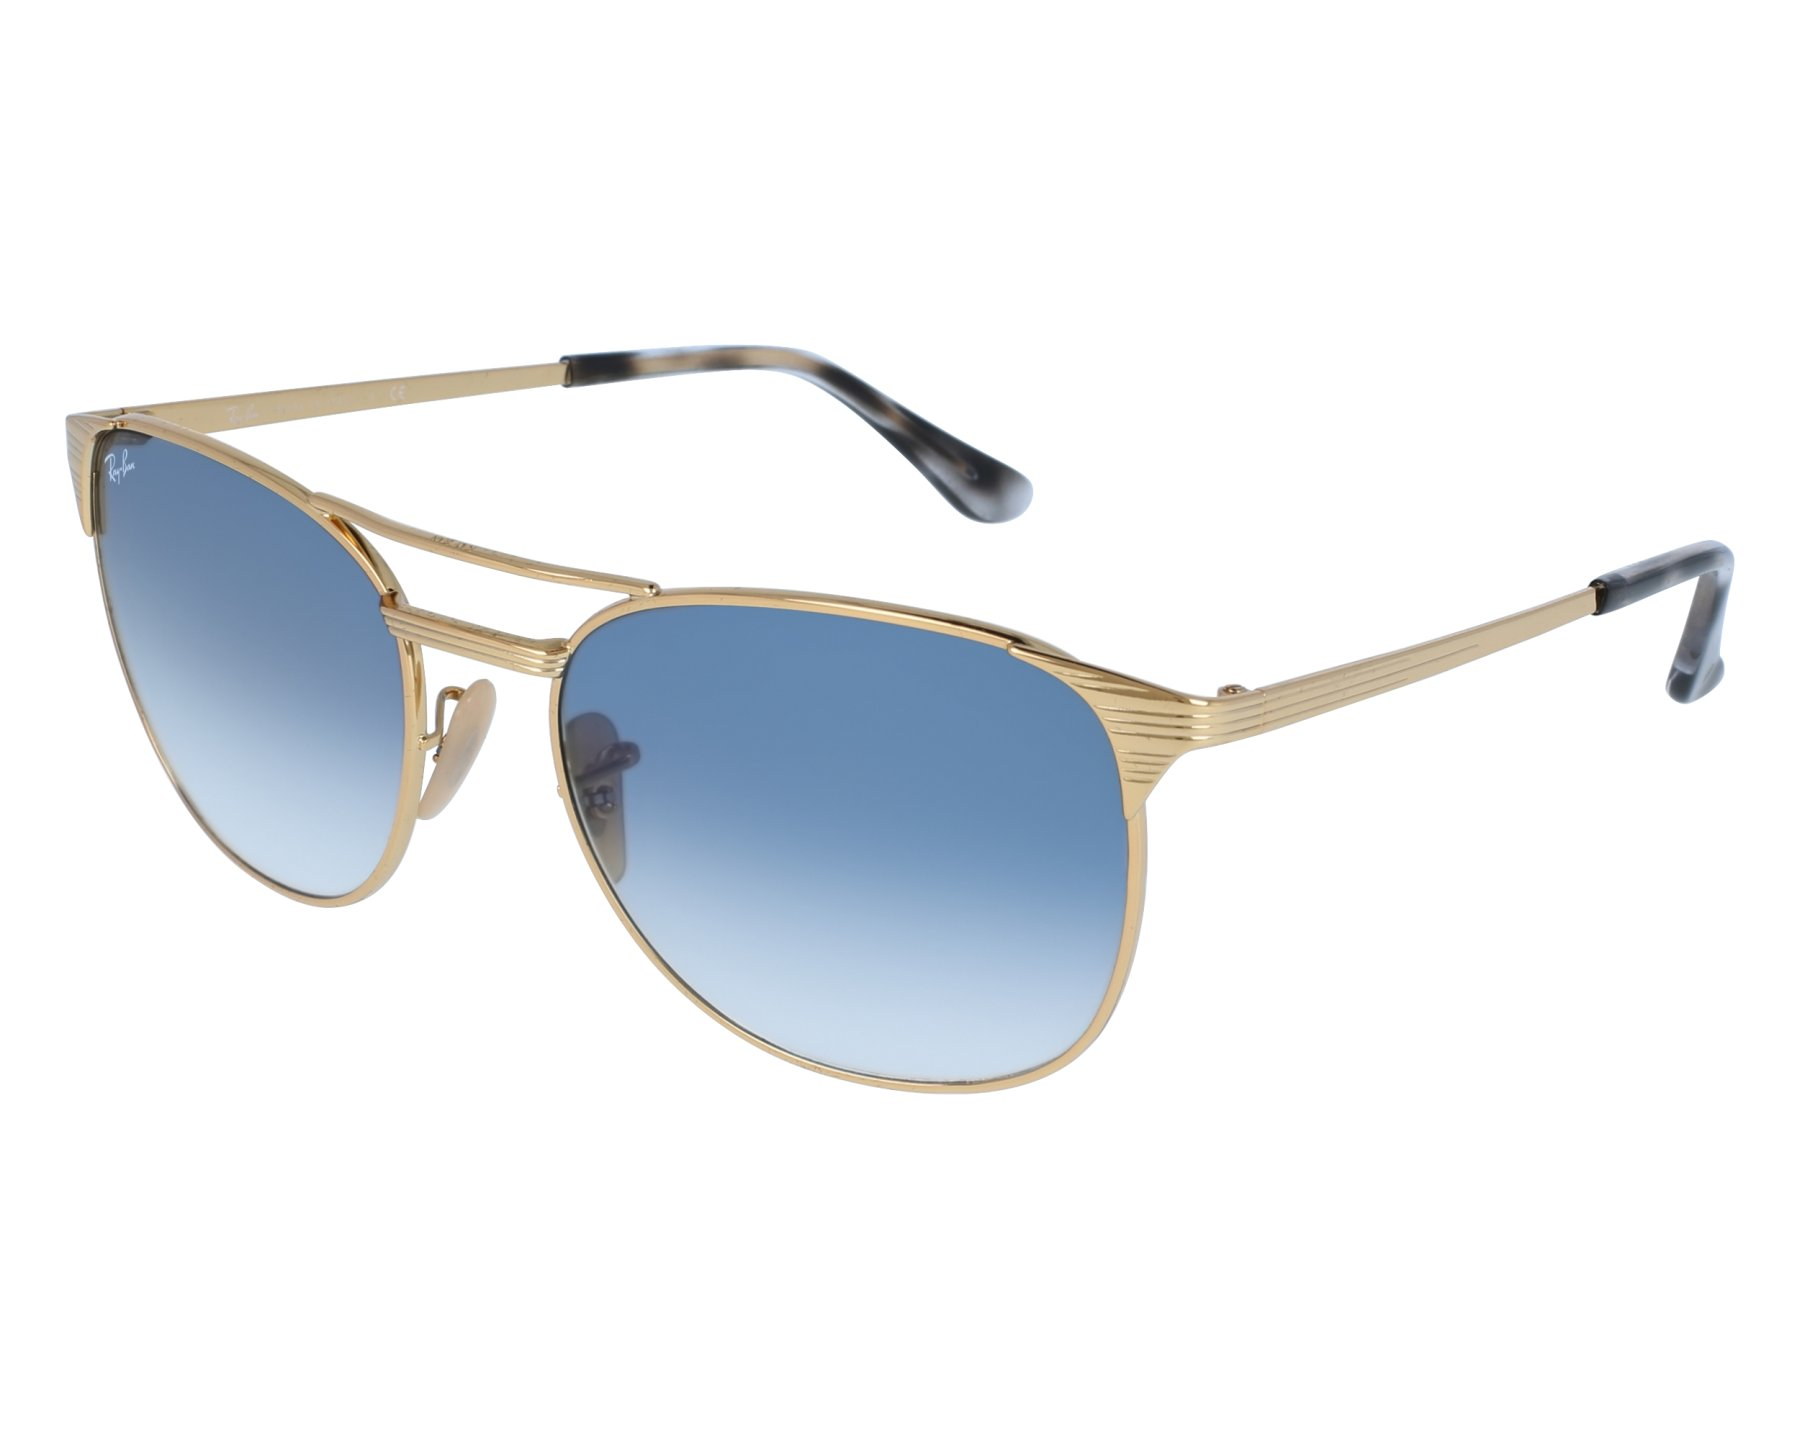 5a81a4cce88 Sunglasses Ray-Ban RB-3429-M 001 3F 58-19 Gold